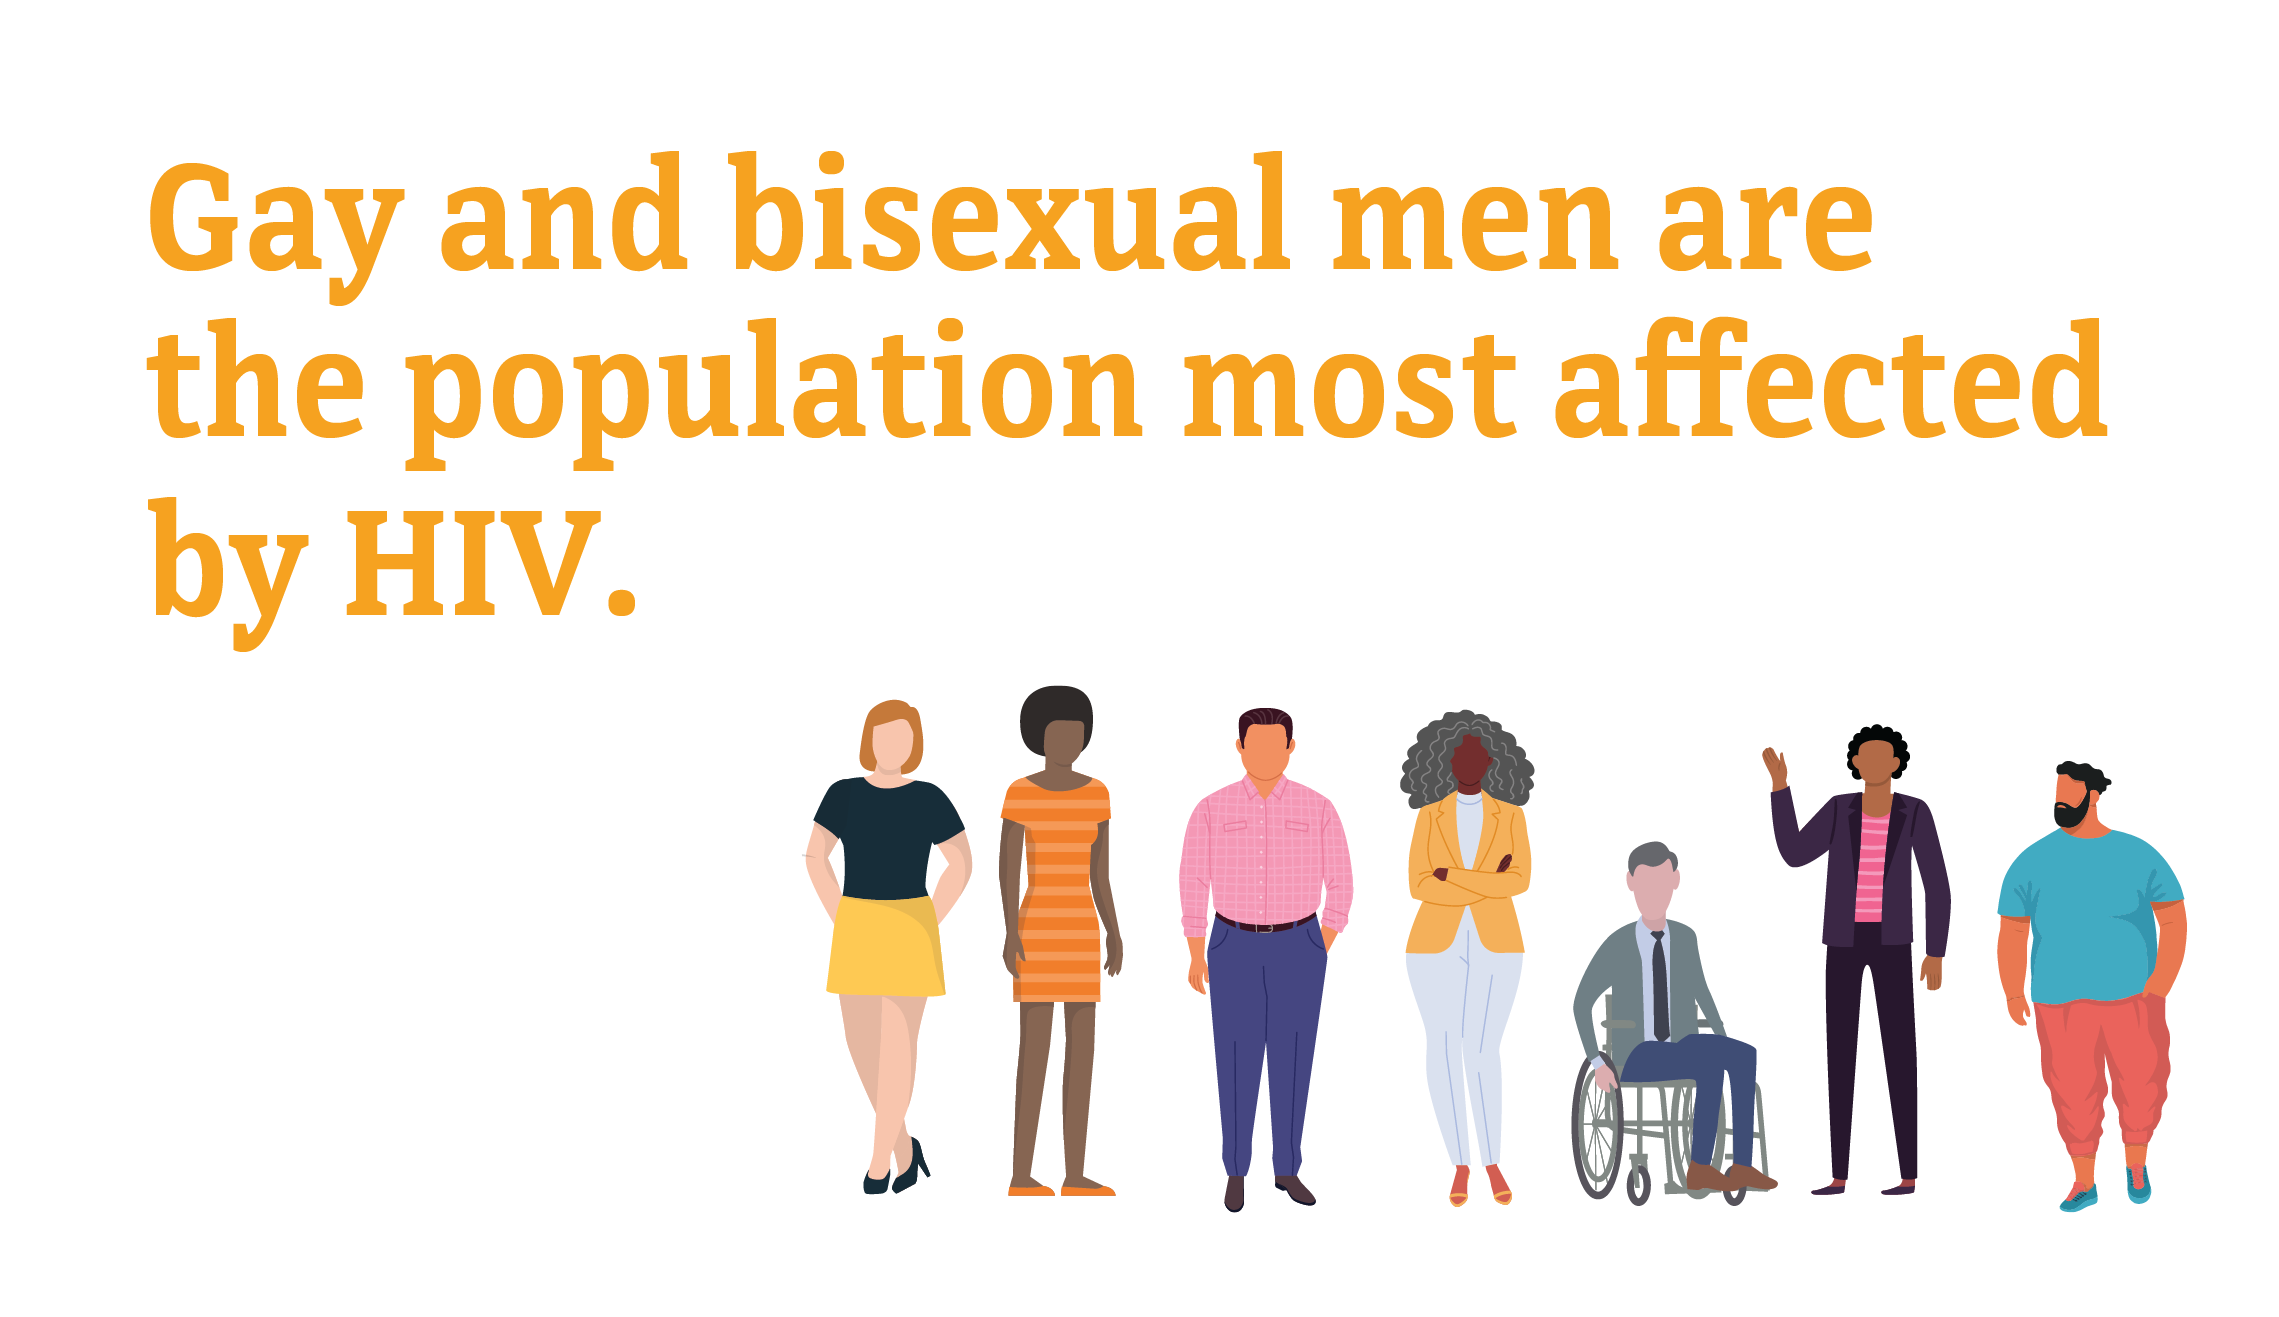 Gay and bisexual men are the population most affected by HIV.